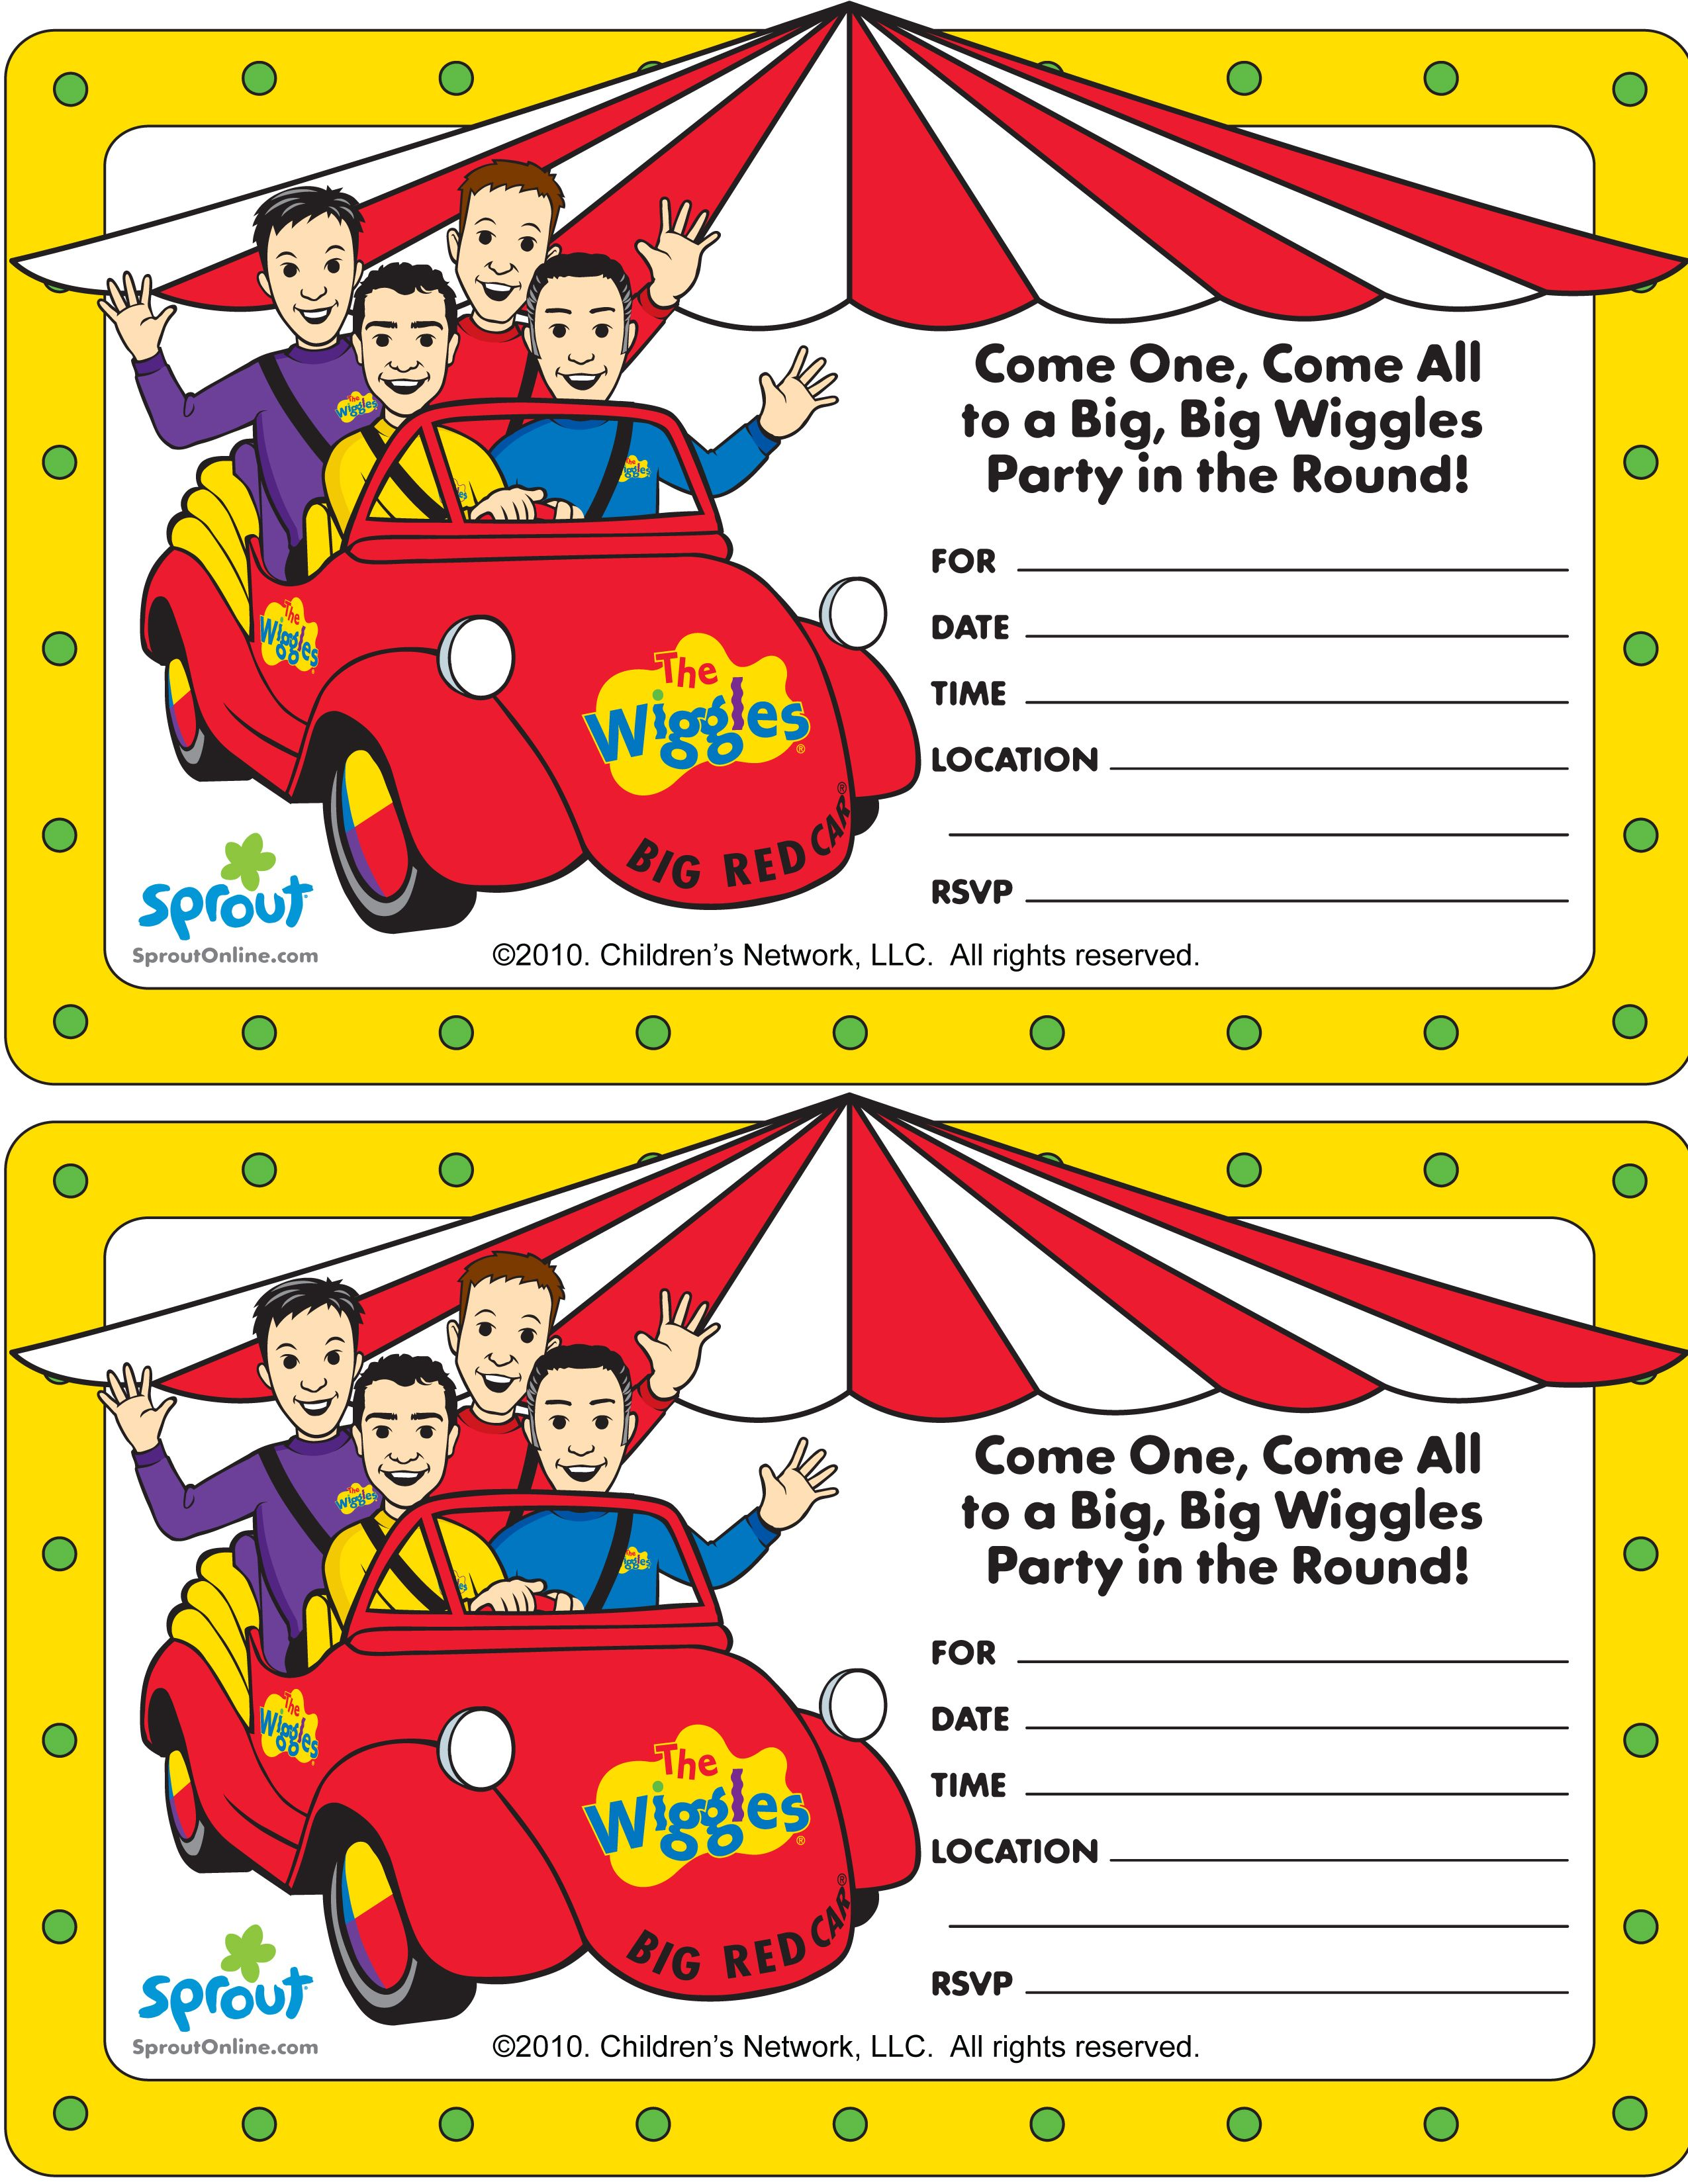 Wiggles Party Invitation Sproutonline Wiggles Party Circus